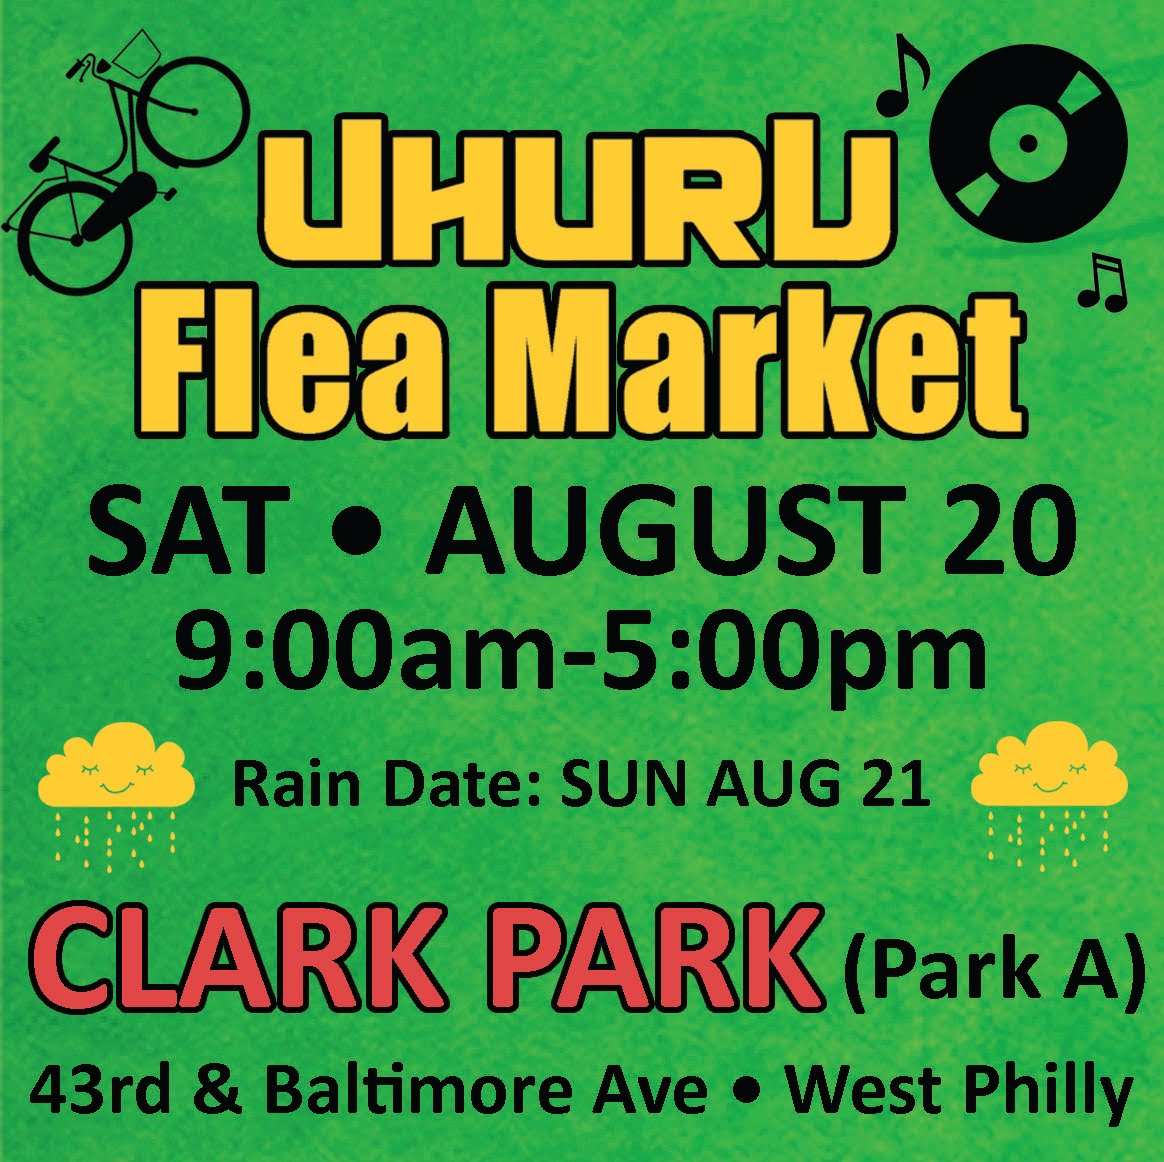 Uhuru Flea Market - SAT AUGUST 20th!